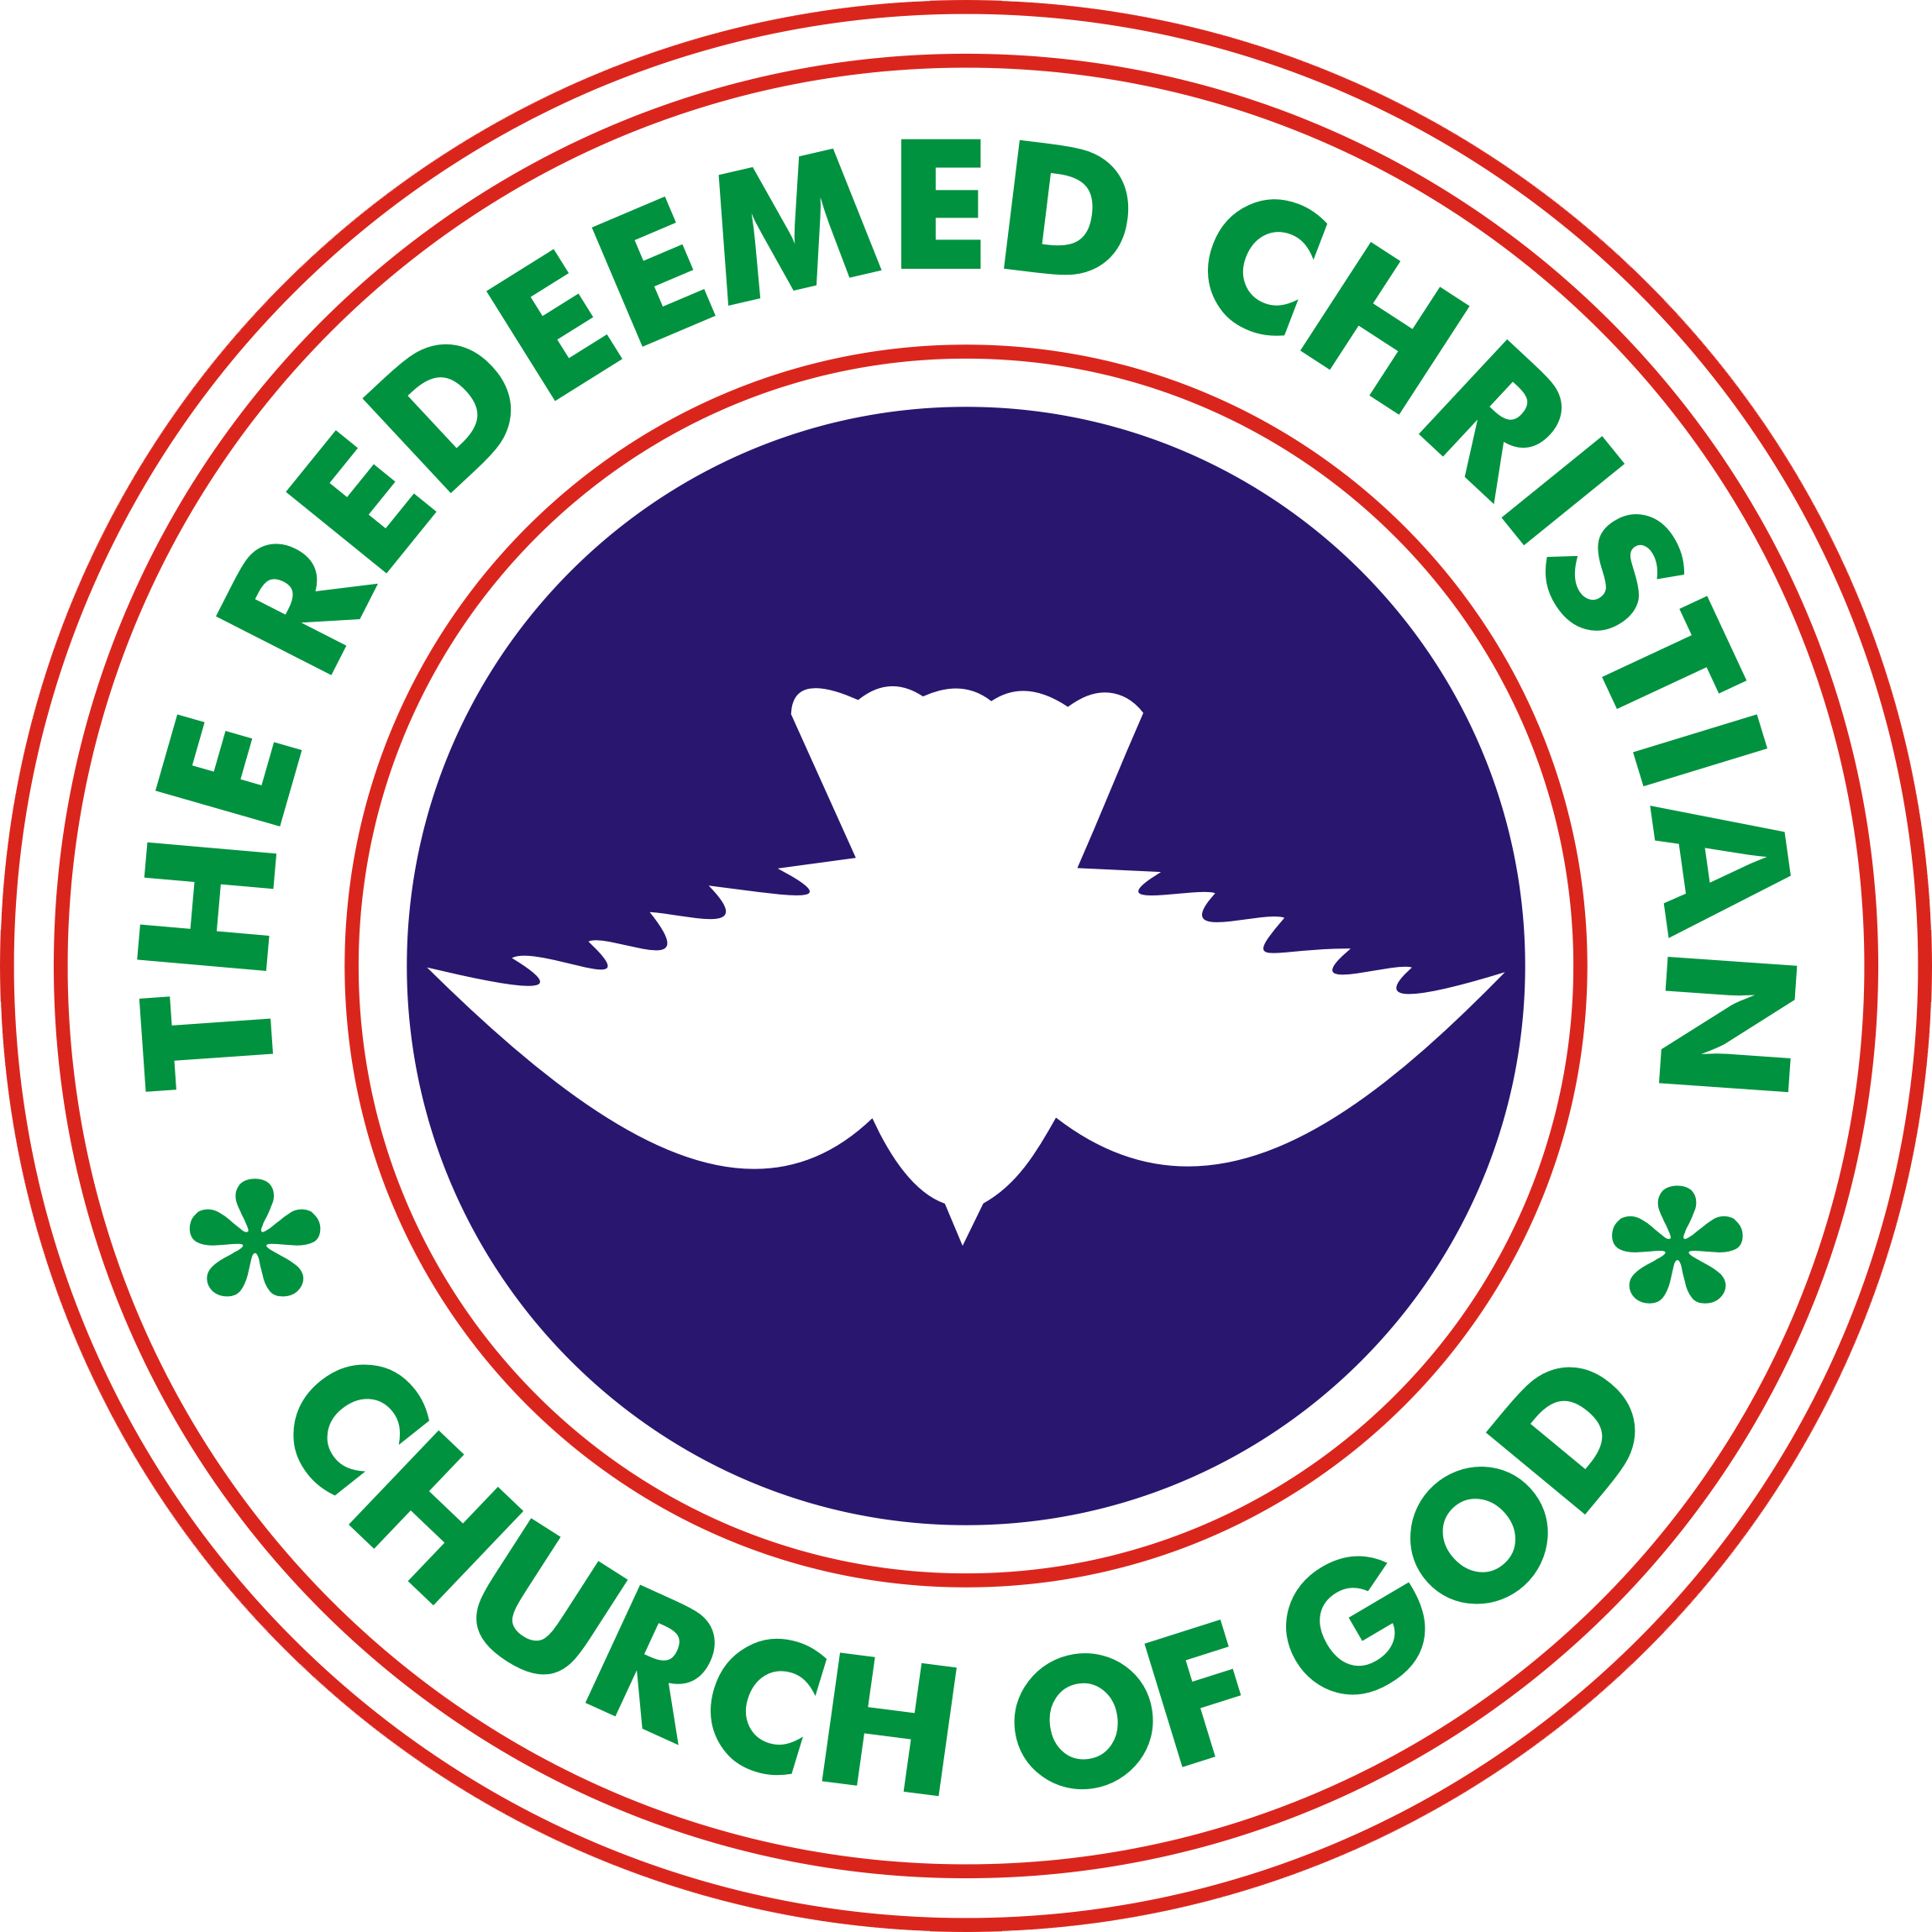 RCCG Messiah Chapel in Montreal, Quebec